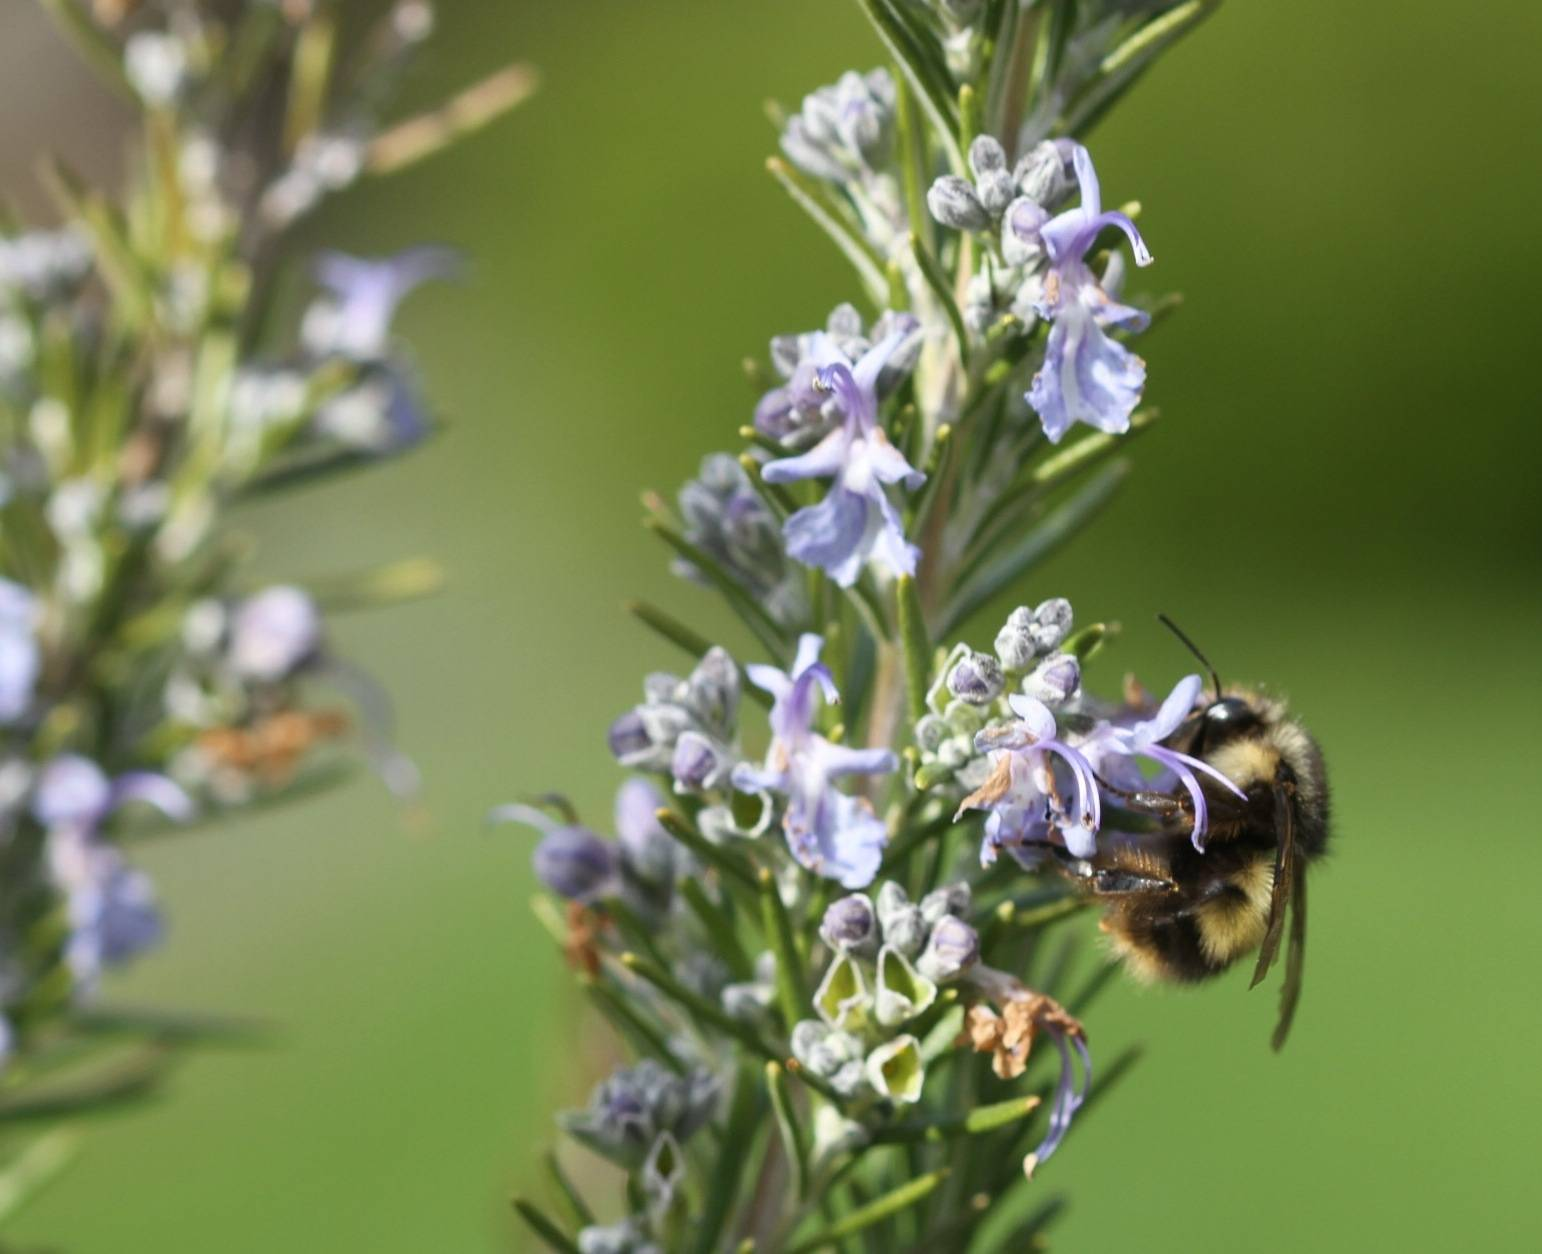 Honeybee numbers are dropping so steeply that some species are believed extinct. Gardeners can help by adding plants that flower both early and late in the season like these Rosemary blooms.